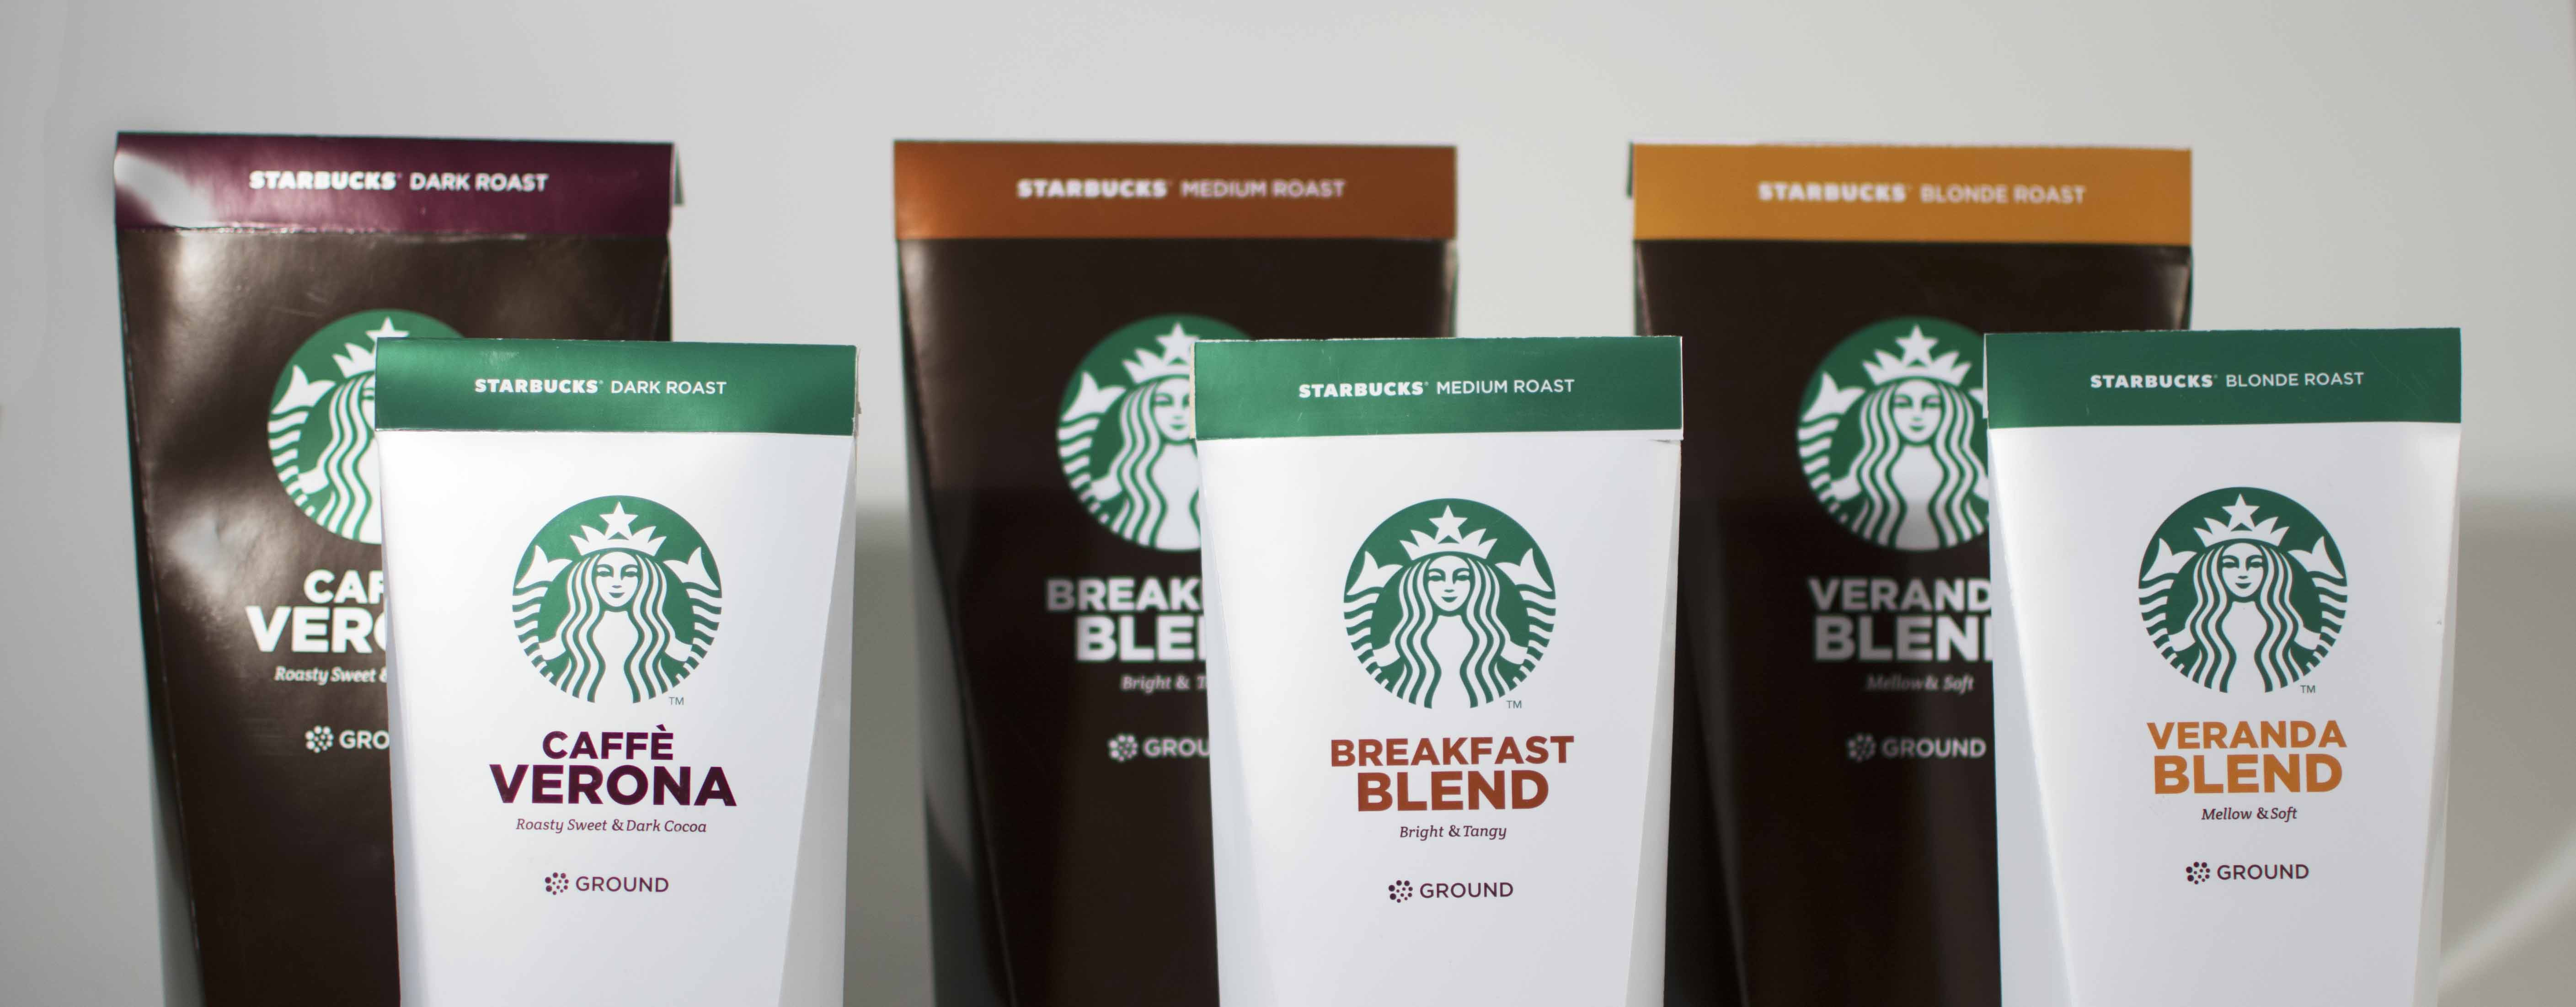 Modren Starbucks Coffee Bag Design To The Rewards Be Hidden Under Freshness Flap So That They Could Only Seen Once Package Was Opened